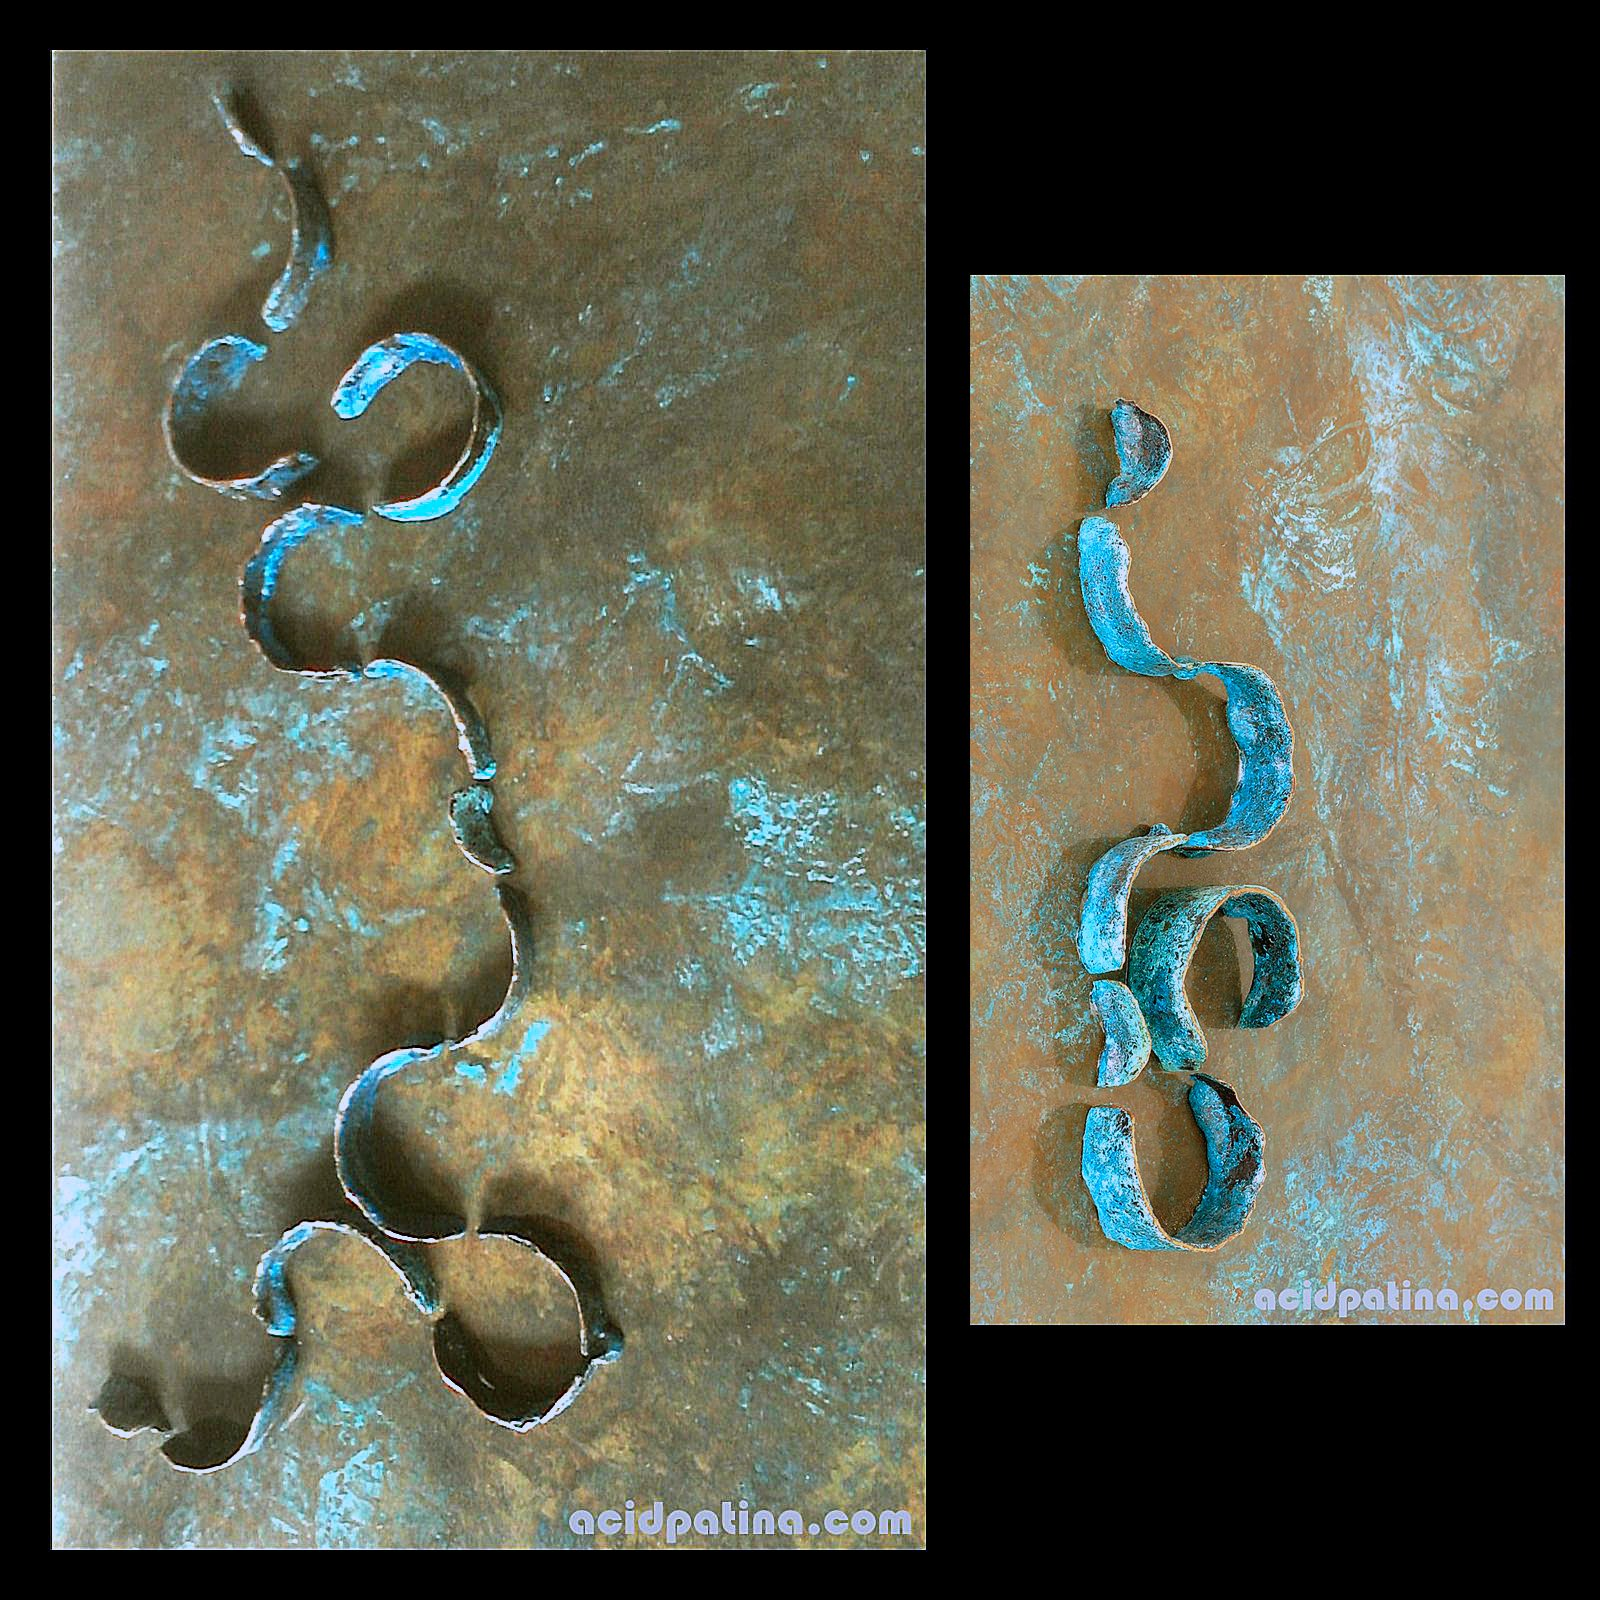 DNA Acid Patina